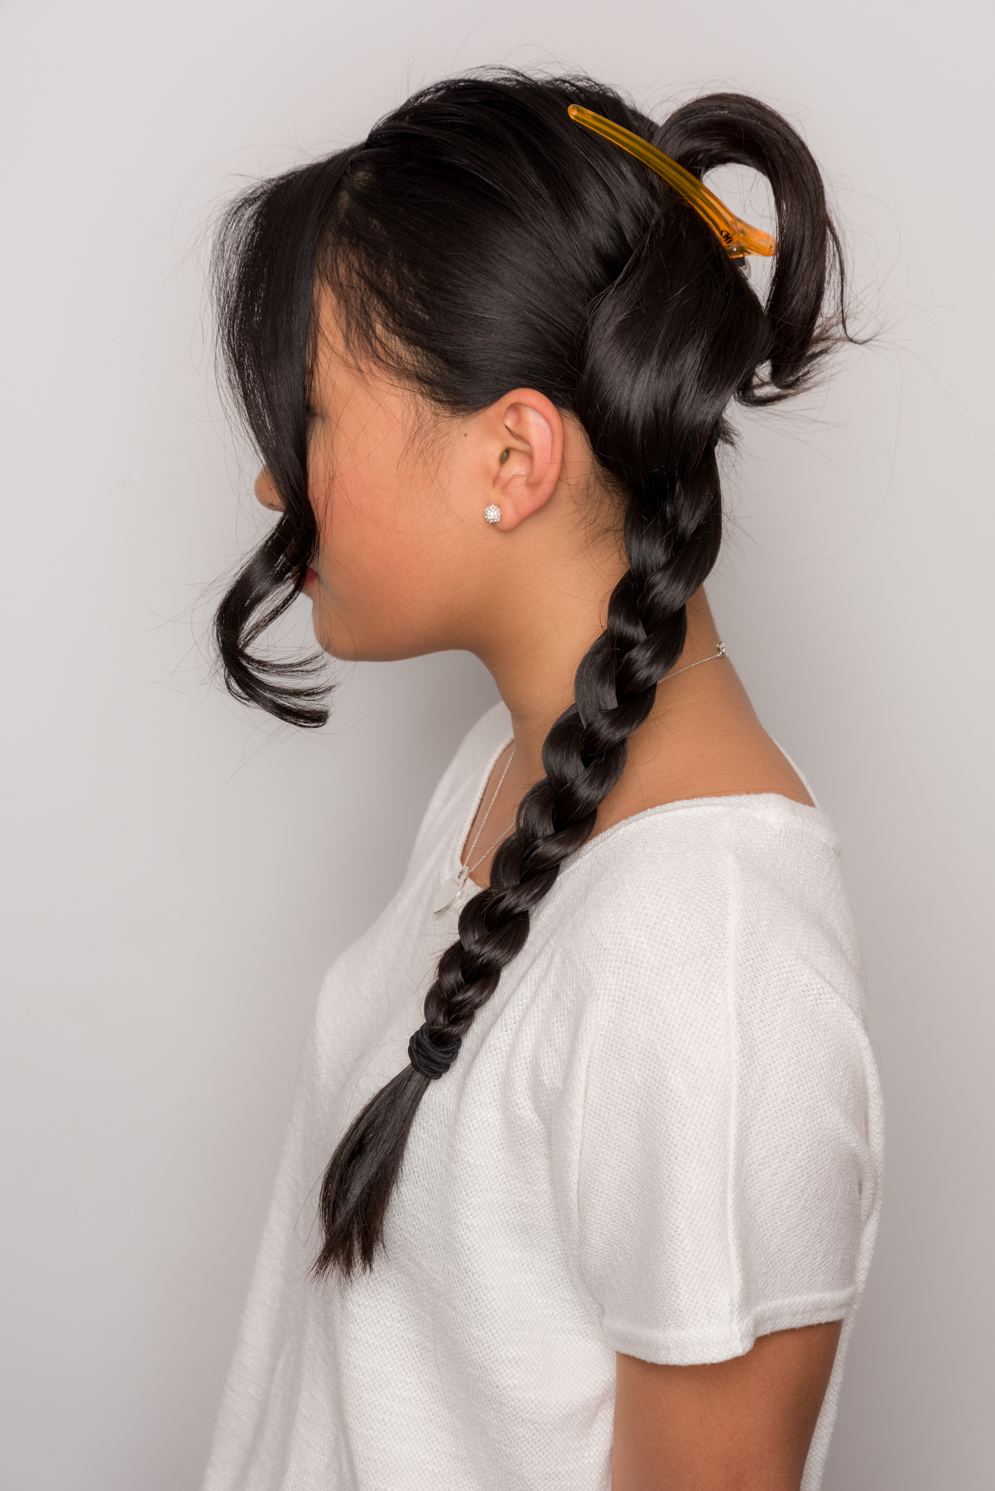 ROCK MAMA NYC LIFESTYLEBLOG-HOW TO MAKE A EASY STYLISH SIDE BUN